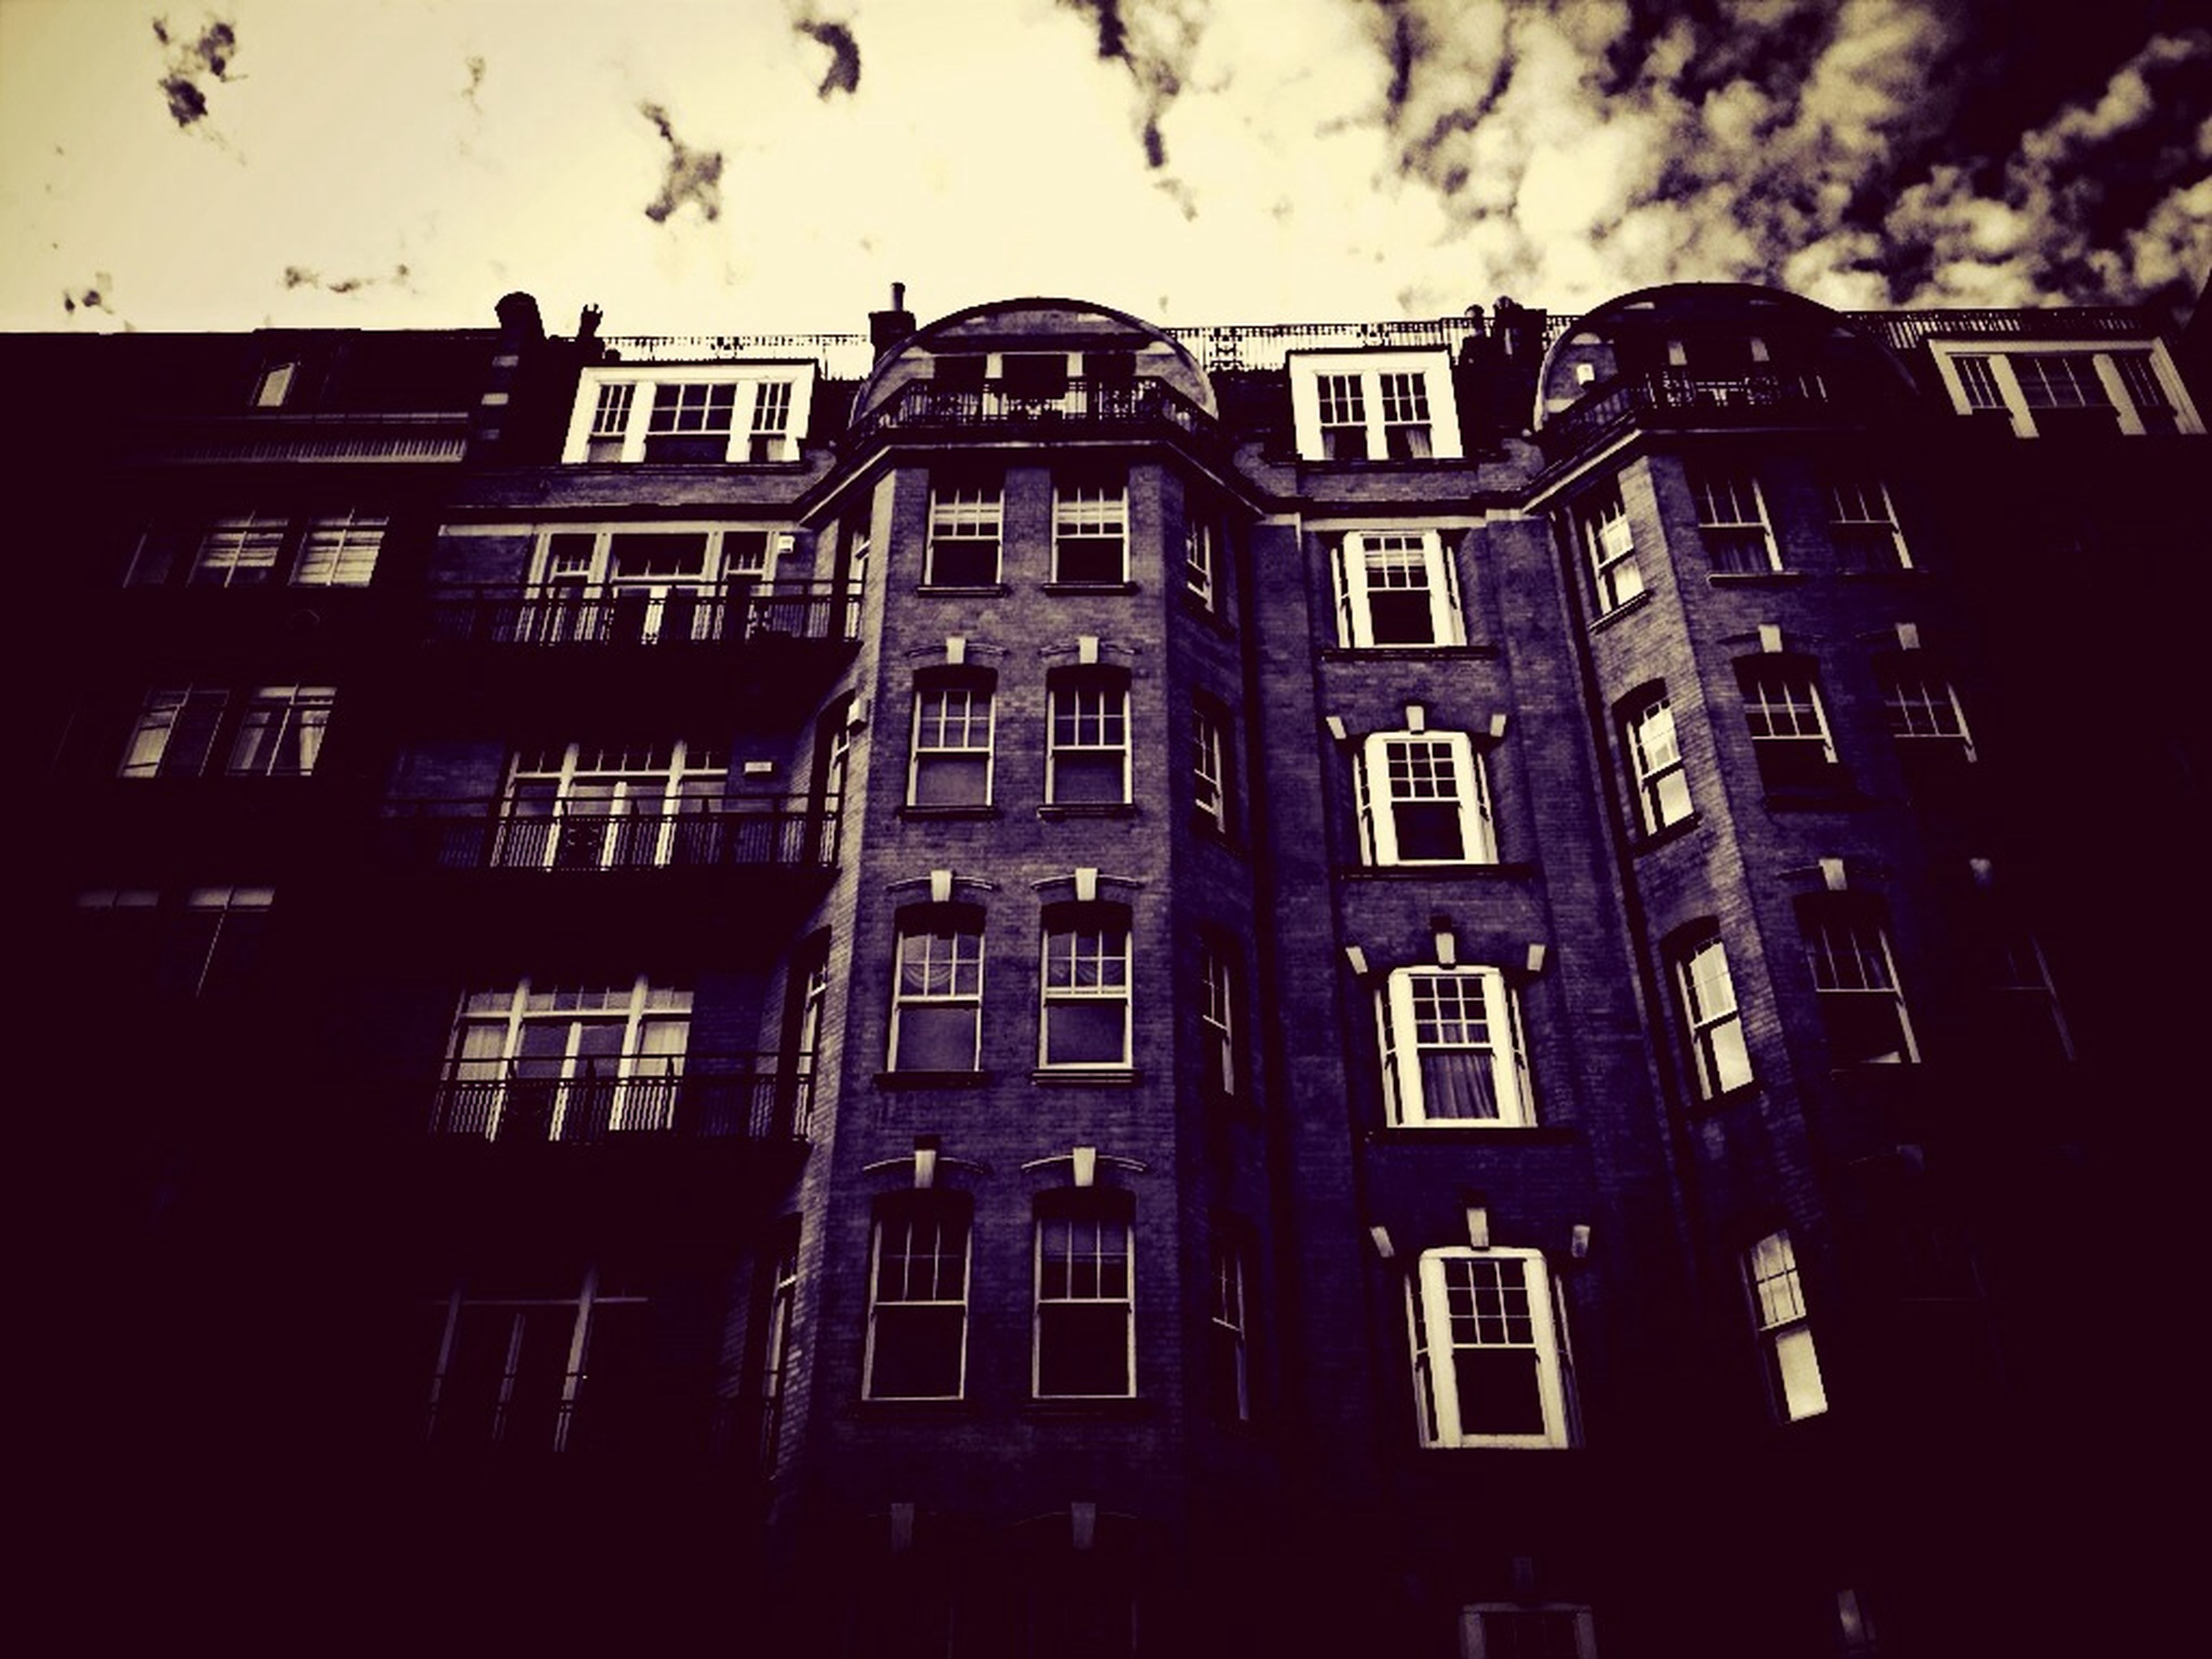 building exterior, architecture, built structure, window, low angle view, building, residential building, sky, residential structure, city, apartment, outdoors, day, no people, house, facade, exterior, balcony, cloud - sky, city life